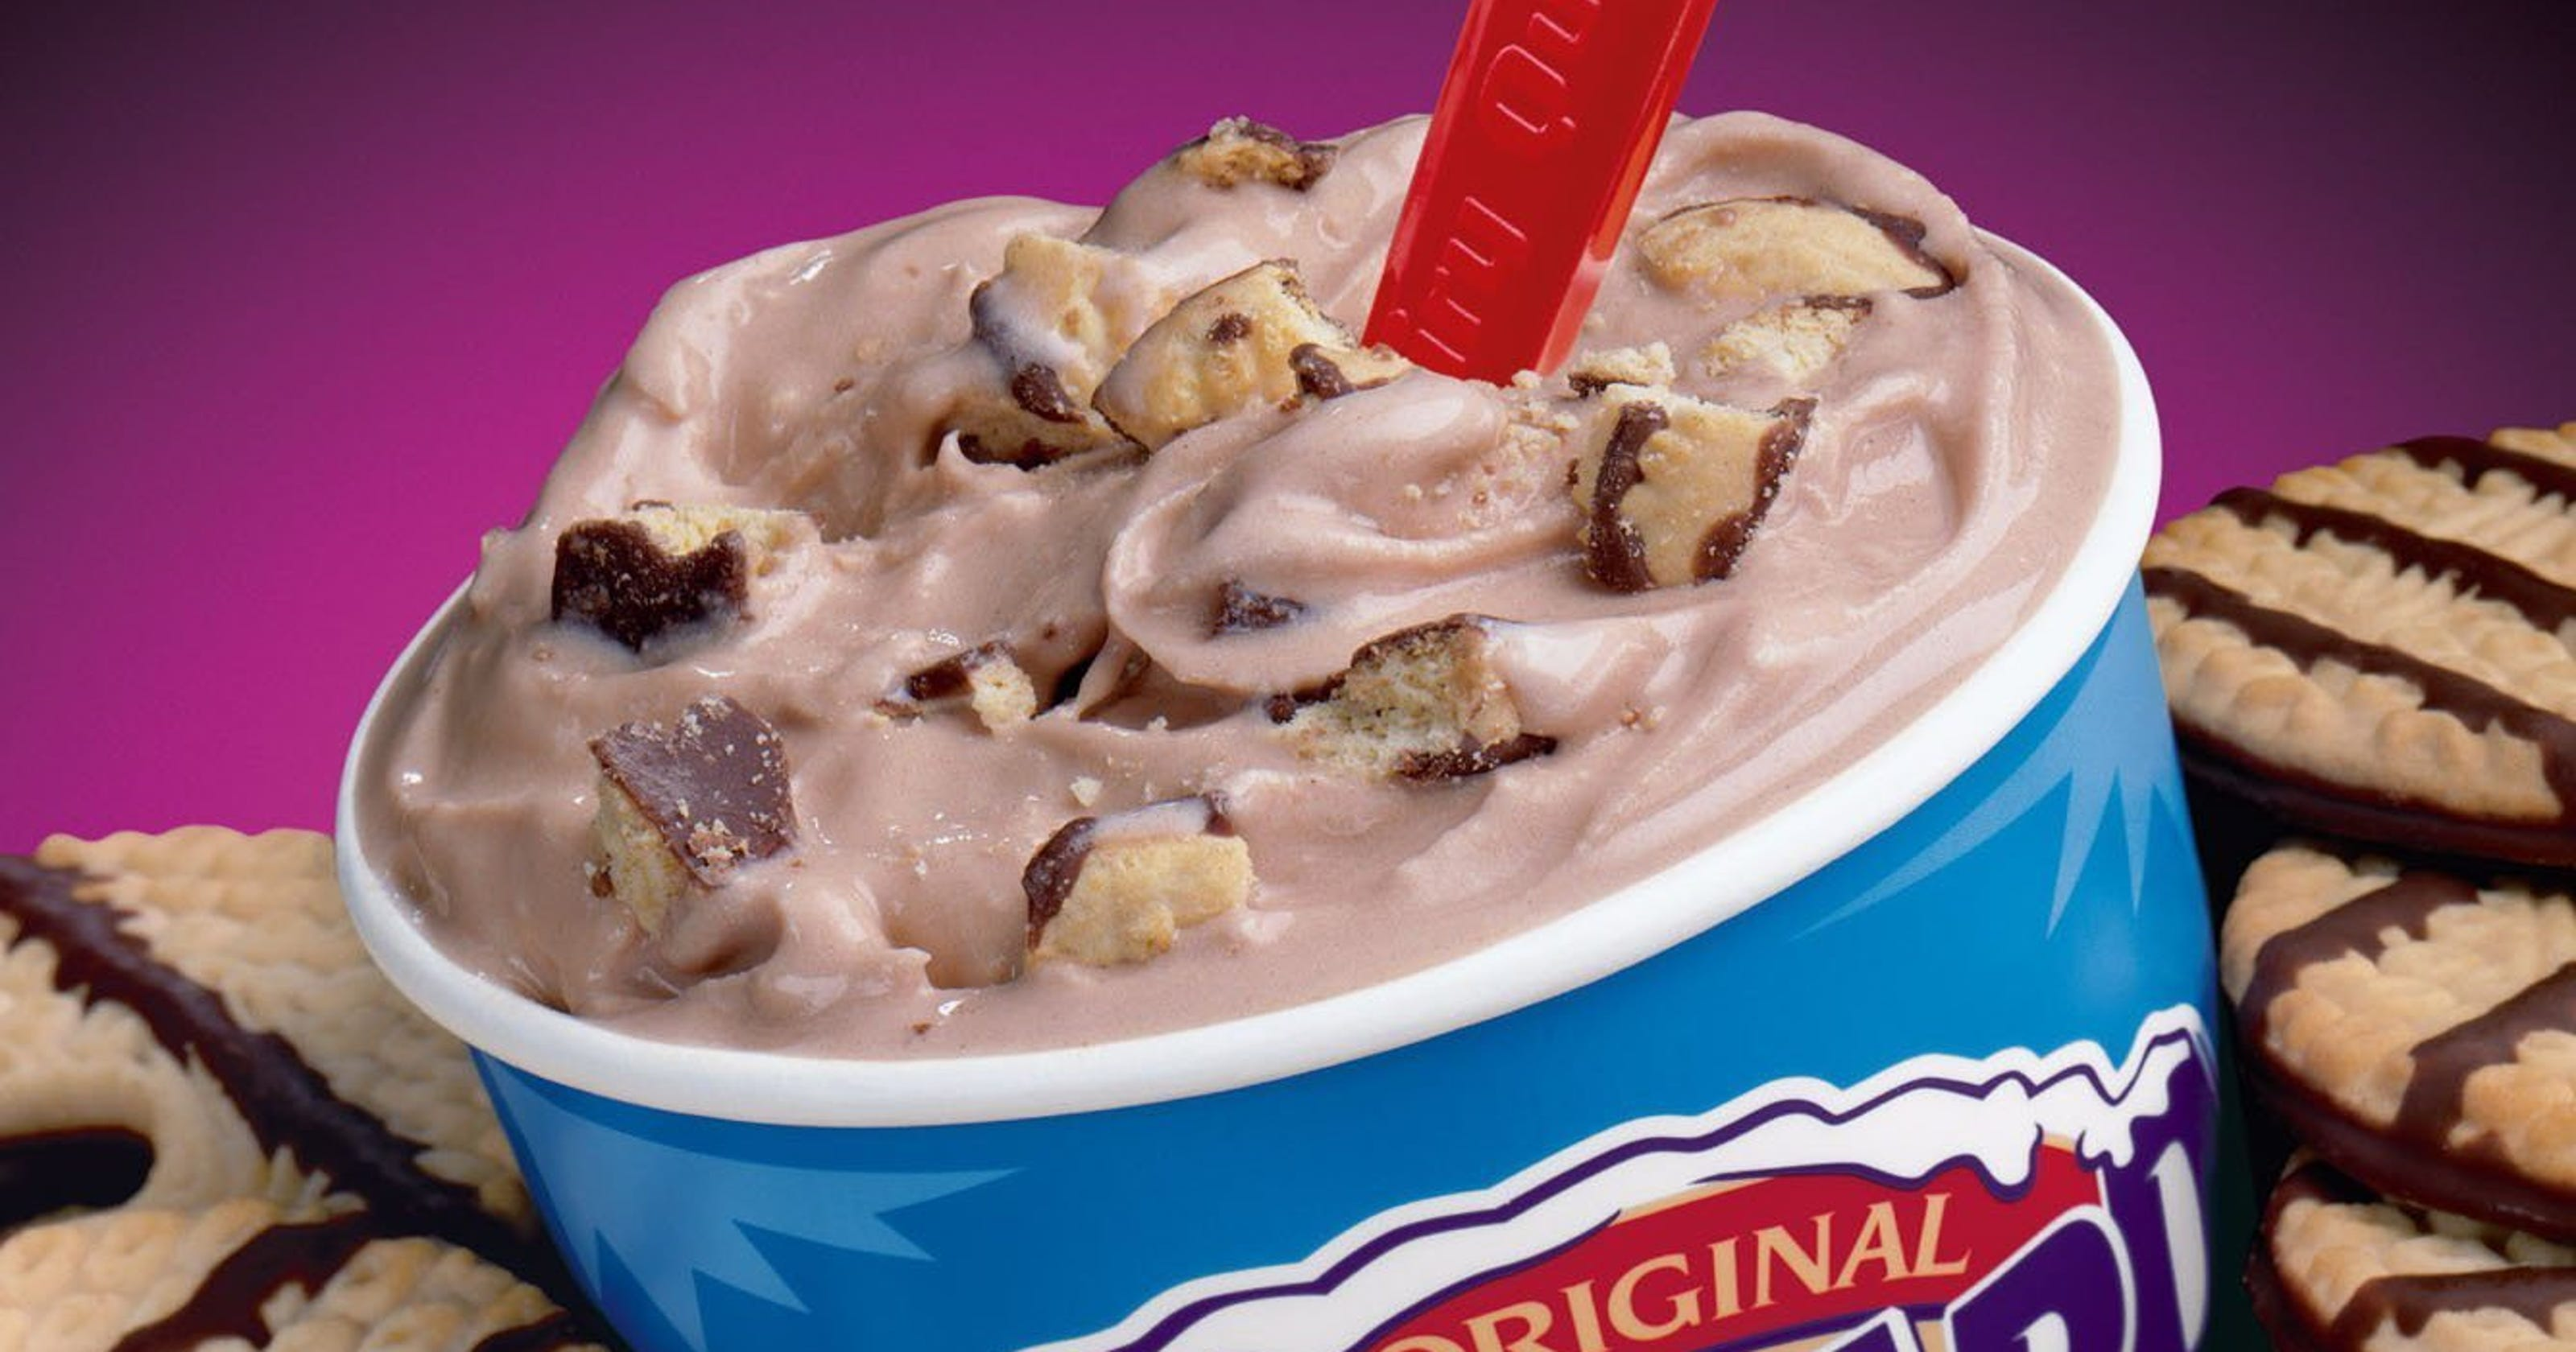 HOW TO GET A FREE DQ BLIZZARD